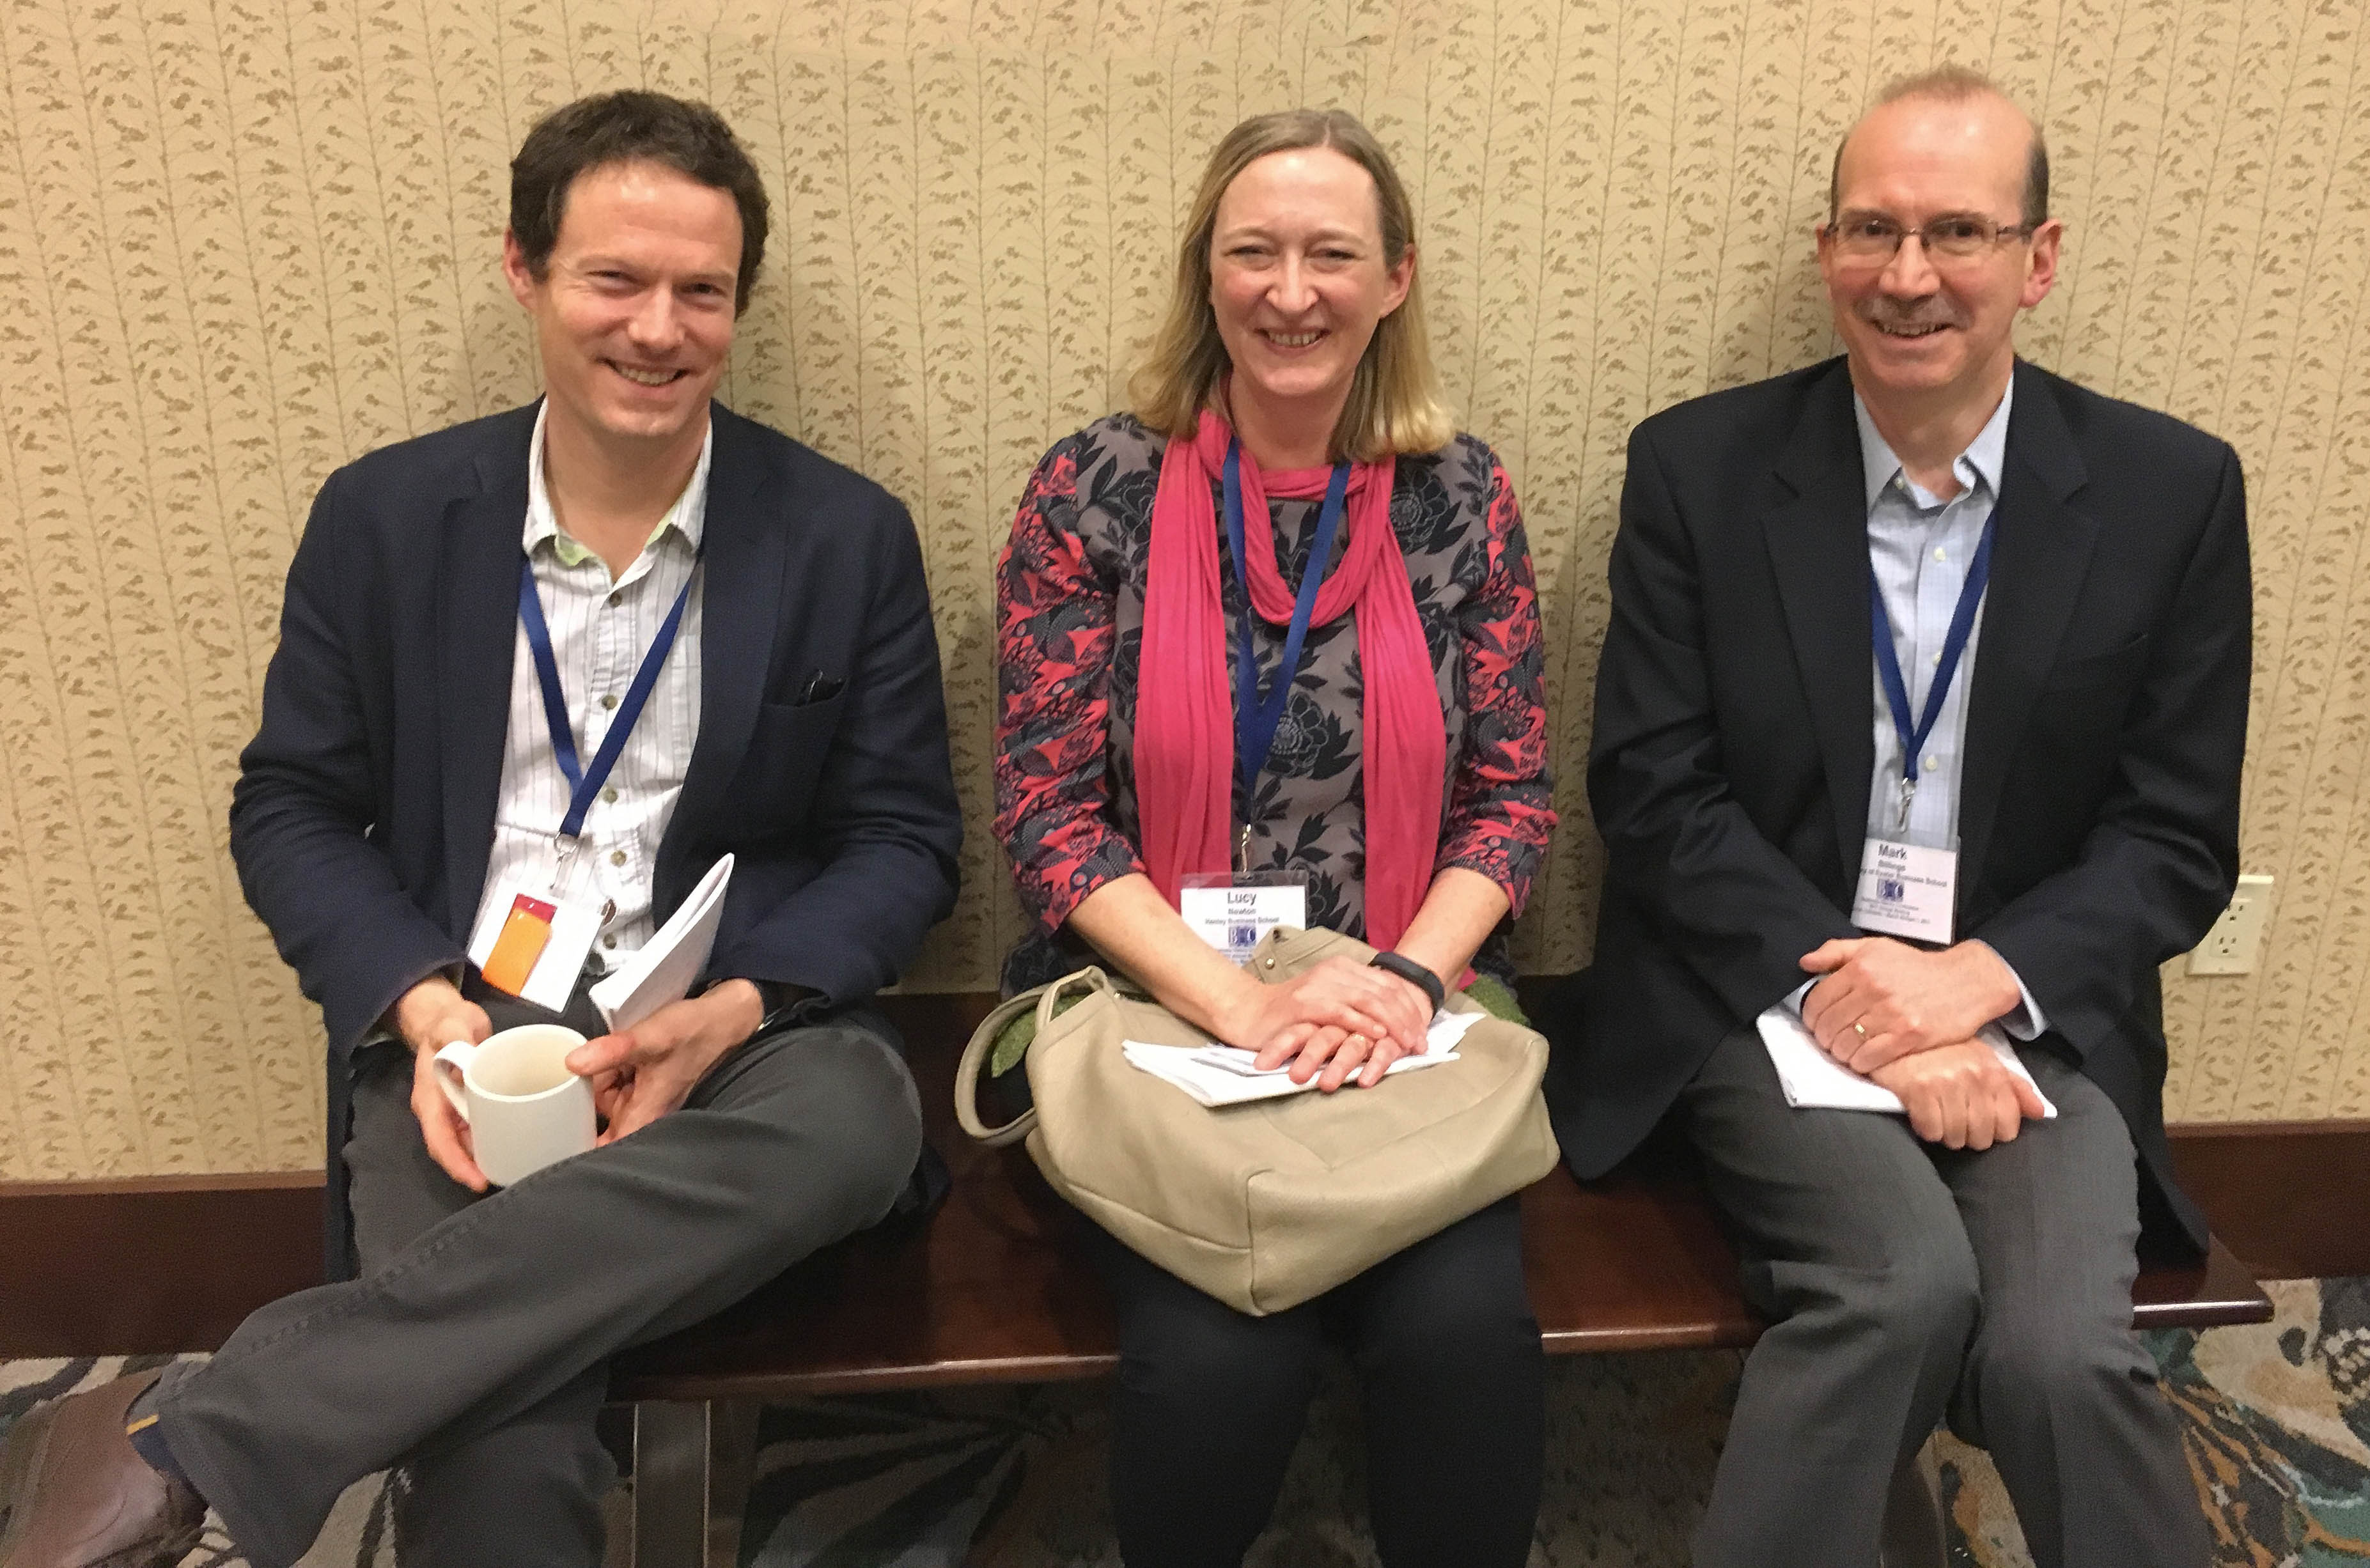 IBS faculty present papers at the Business History Conference in Denver